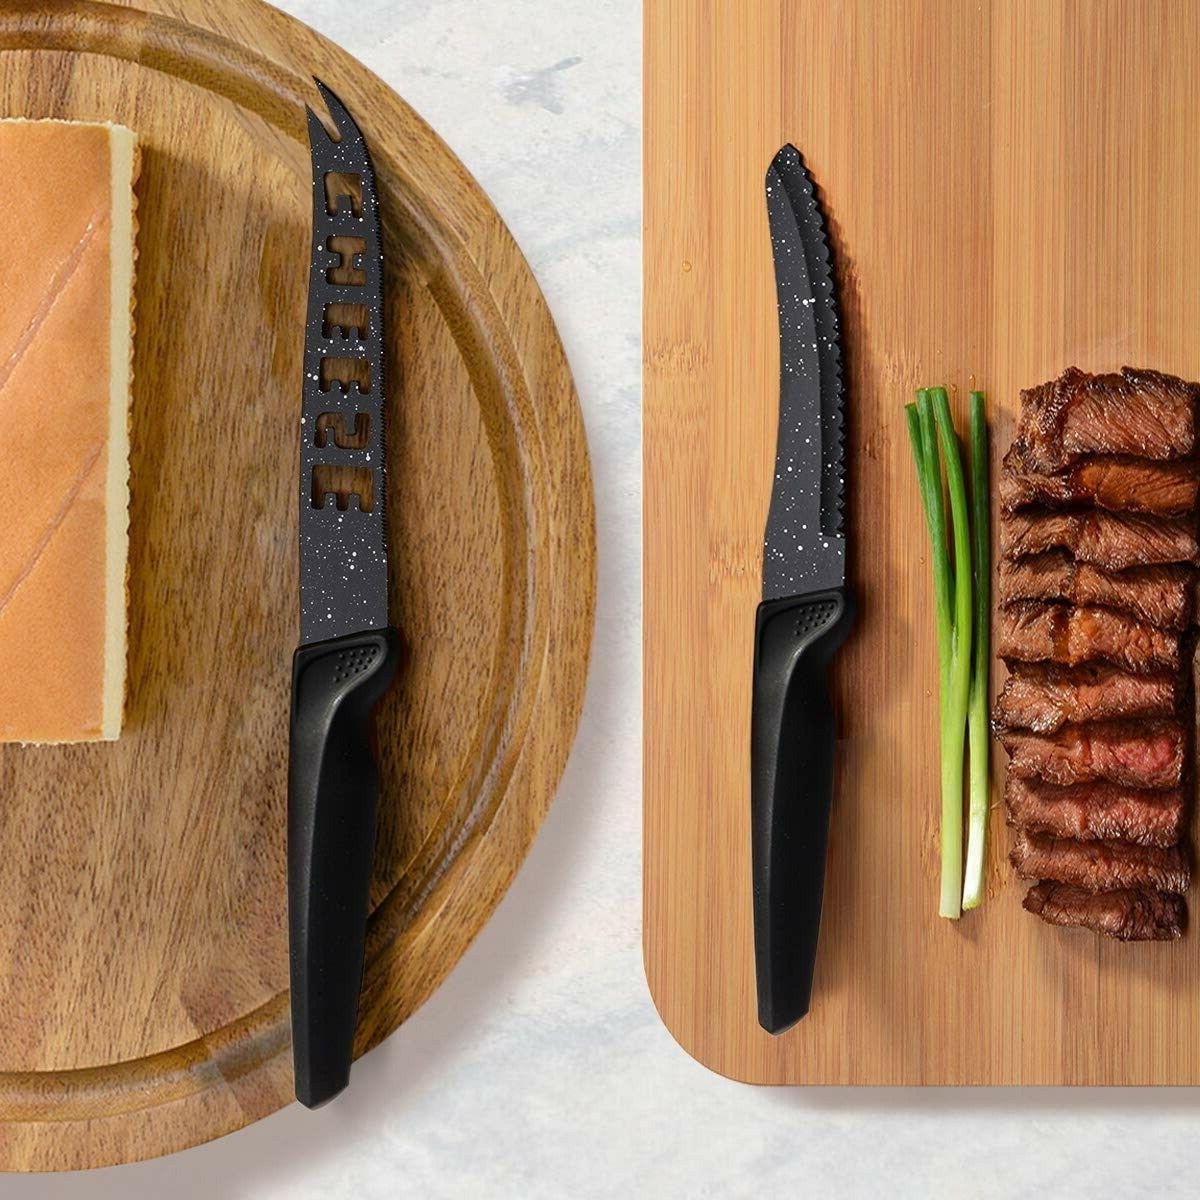 HOBO Knife Stainless Steel Chef Knife Set with Acrylic Block Profe